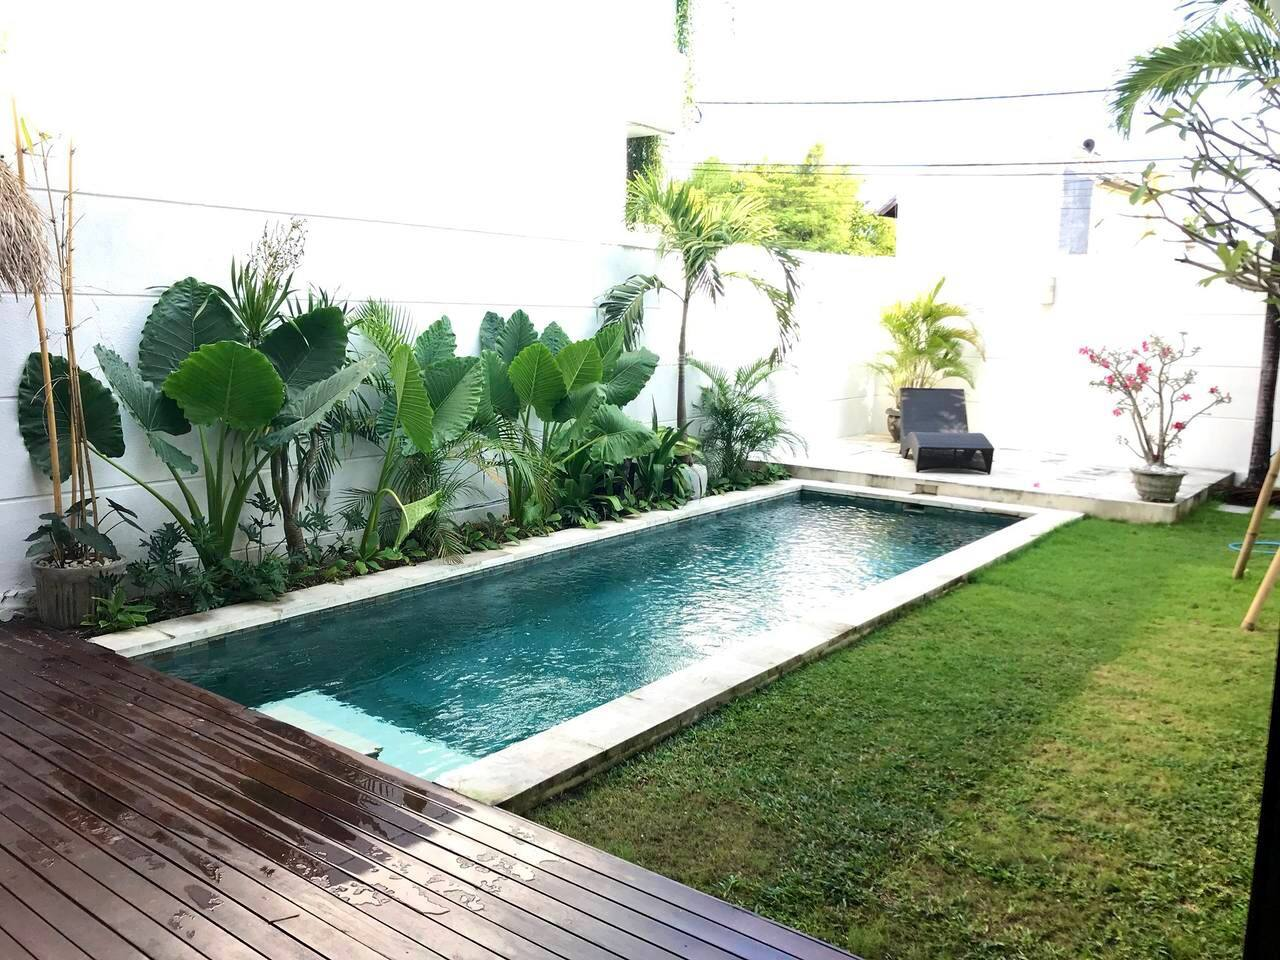 Private outdoor pool 5x2m